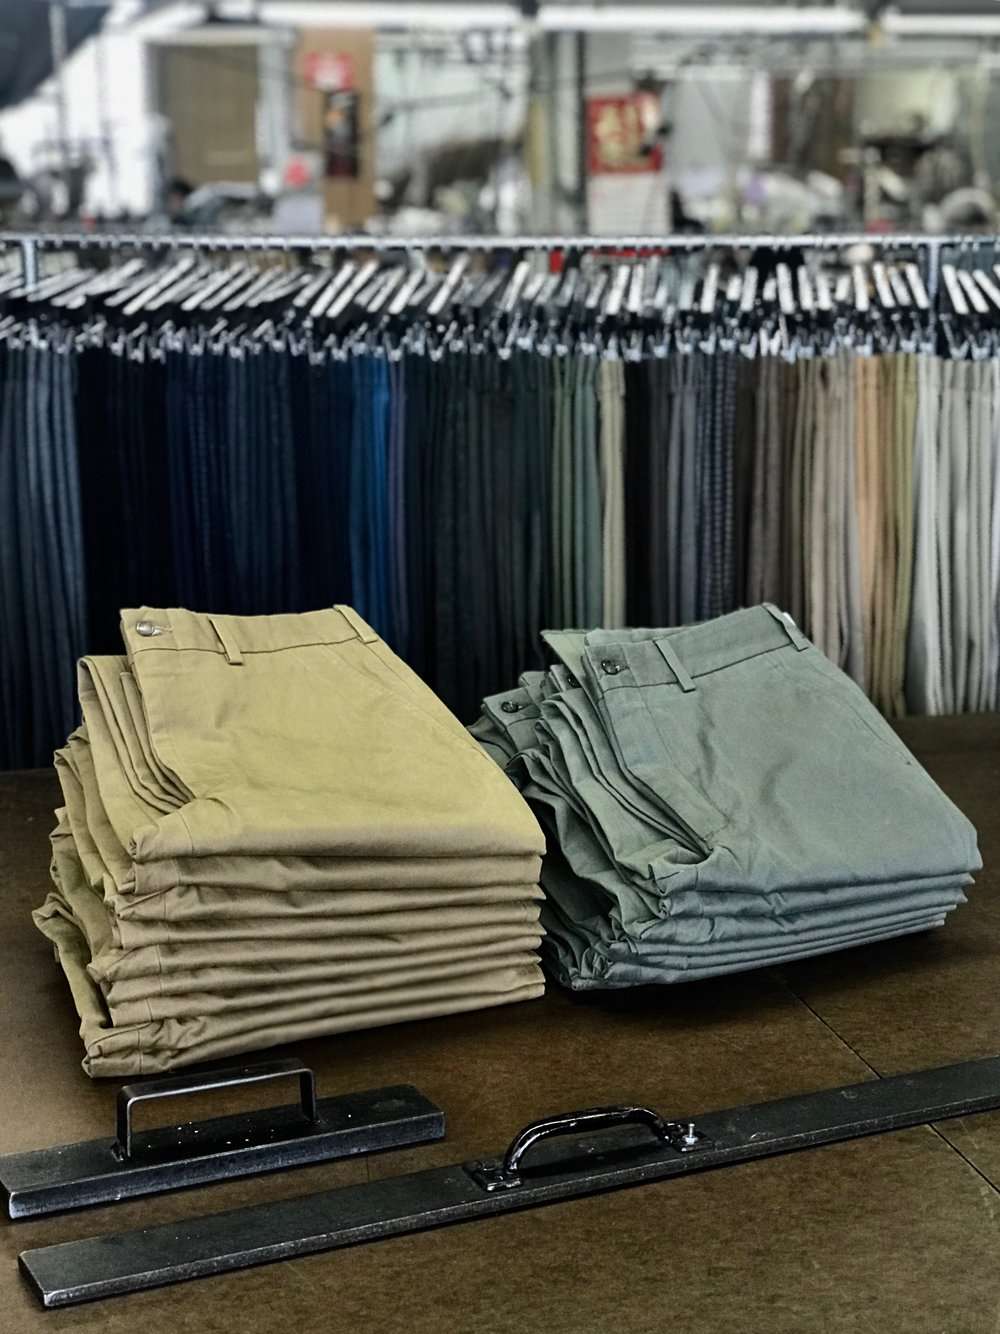 "Welcome to the Hertling Factory Outlet Store - In our pursuit of manufacturing the finest trousers, we purchase a great deal of fabric, produce samples and inventory for Hertling's design and development- as well as our retail partners. Our Factory Store provides customers an opportunity to buy beautifully handcrafted trousers at a unique price and allows us to run lean.We invite you to take advantage of deep savings for this selection of samples, excess inventory, or styles from previous seasons. We'll constantly be adding inventory as it is available, so check back frequently for hidden ""factory finds"".Sales of this special opportunity are final, but we will always take great care of you if an issue arises. Items in our Factory Store will ship complimentarily.Enjoy the shopping."